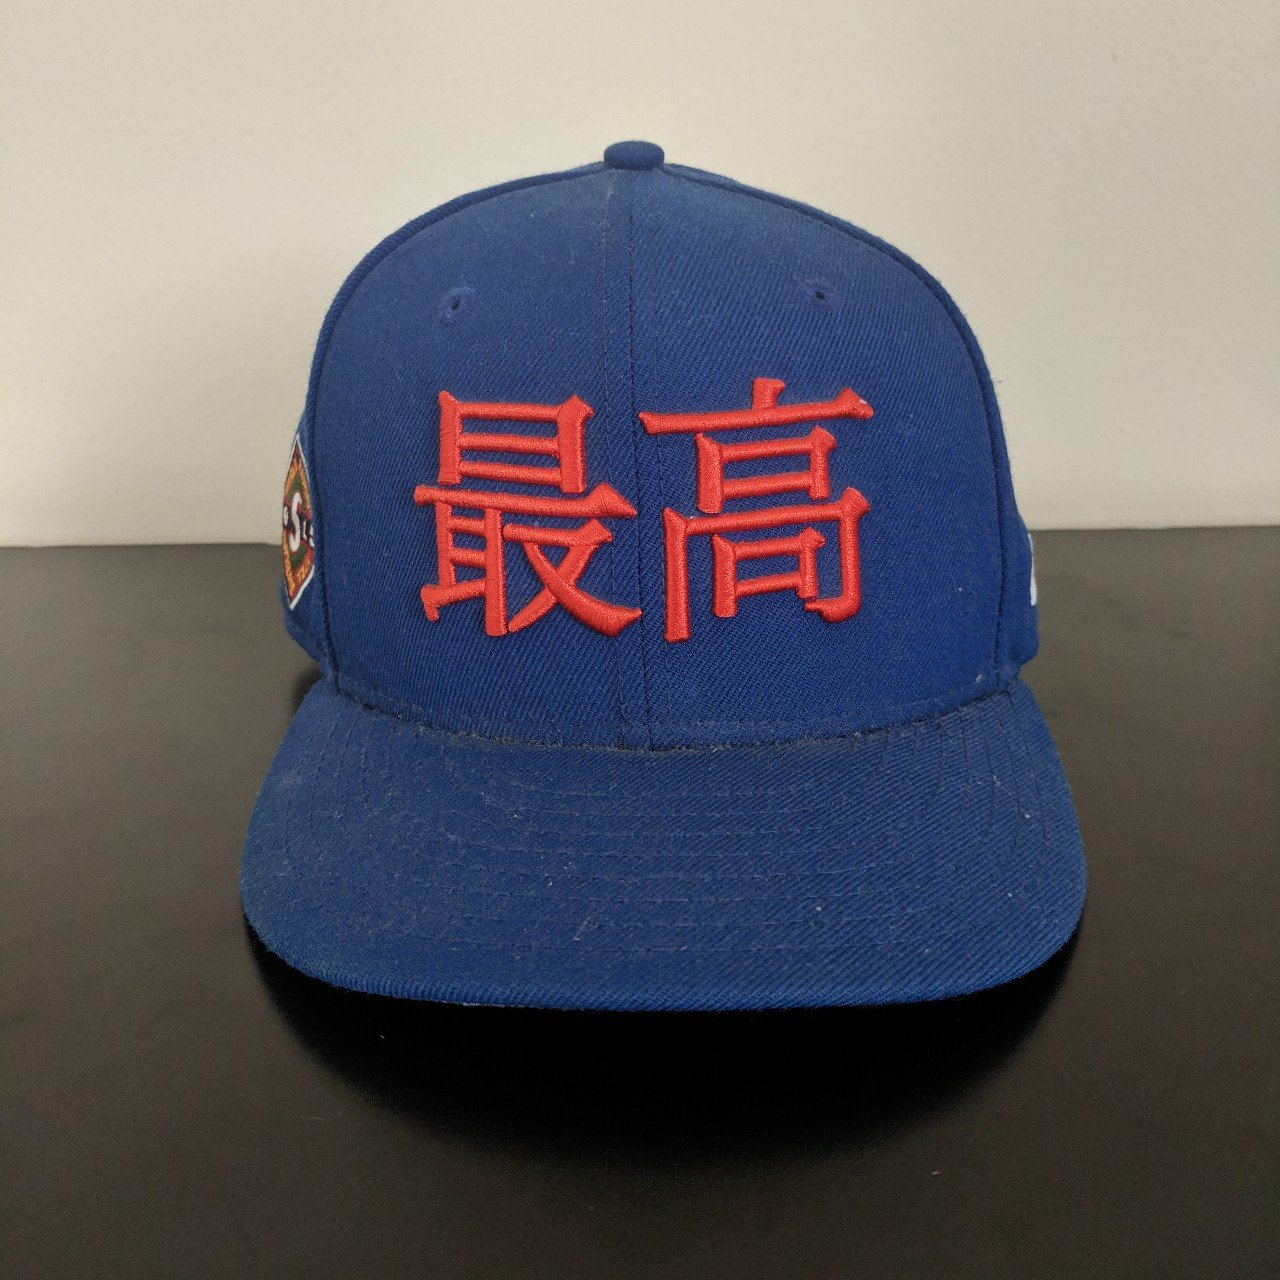 Supreme x New Era Kanji cap All wool Rare and insanely fire - Depop 2ced937226e